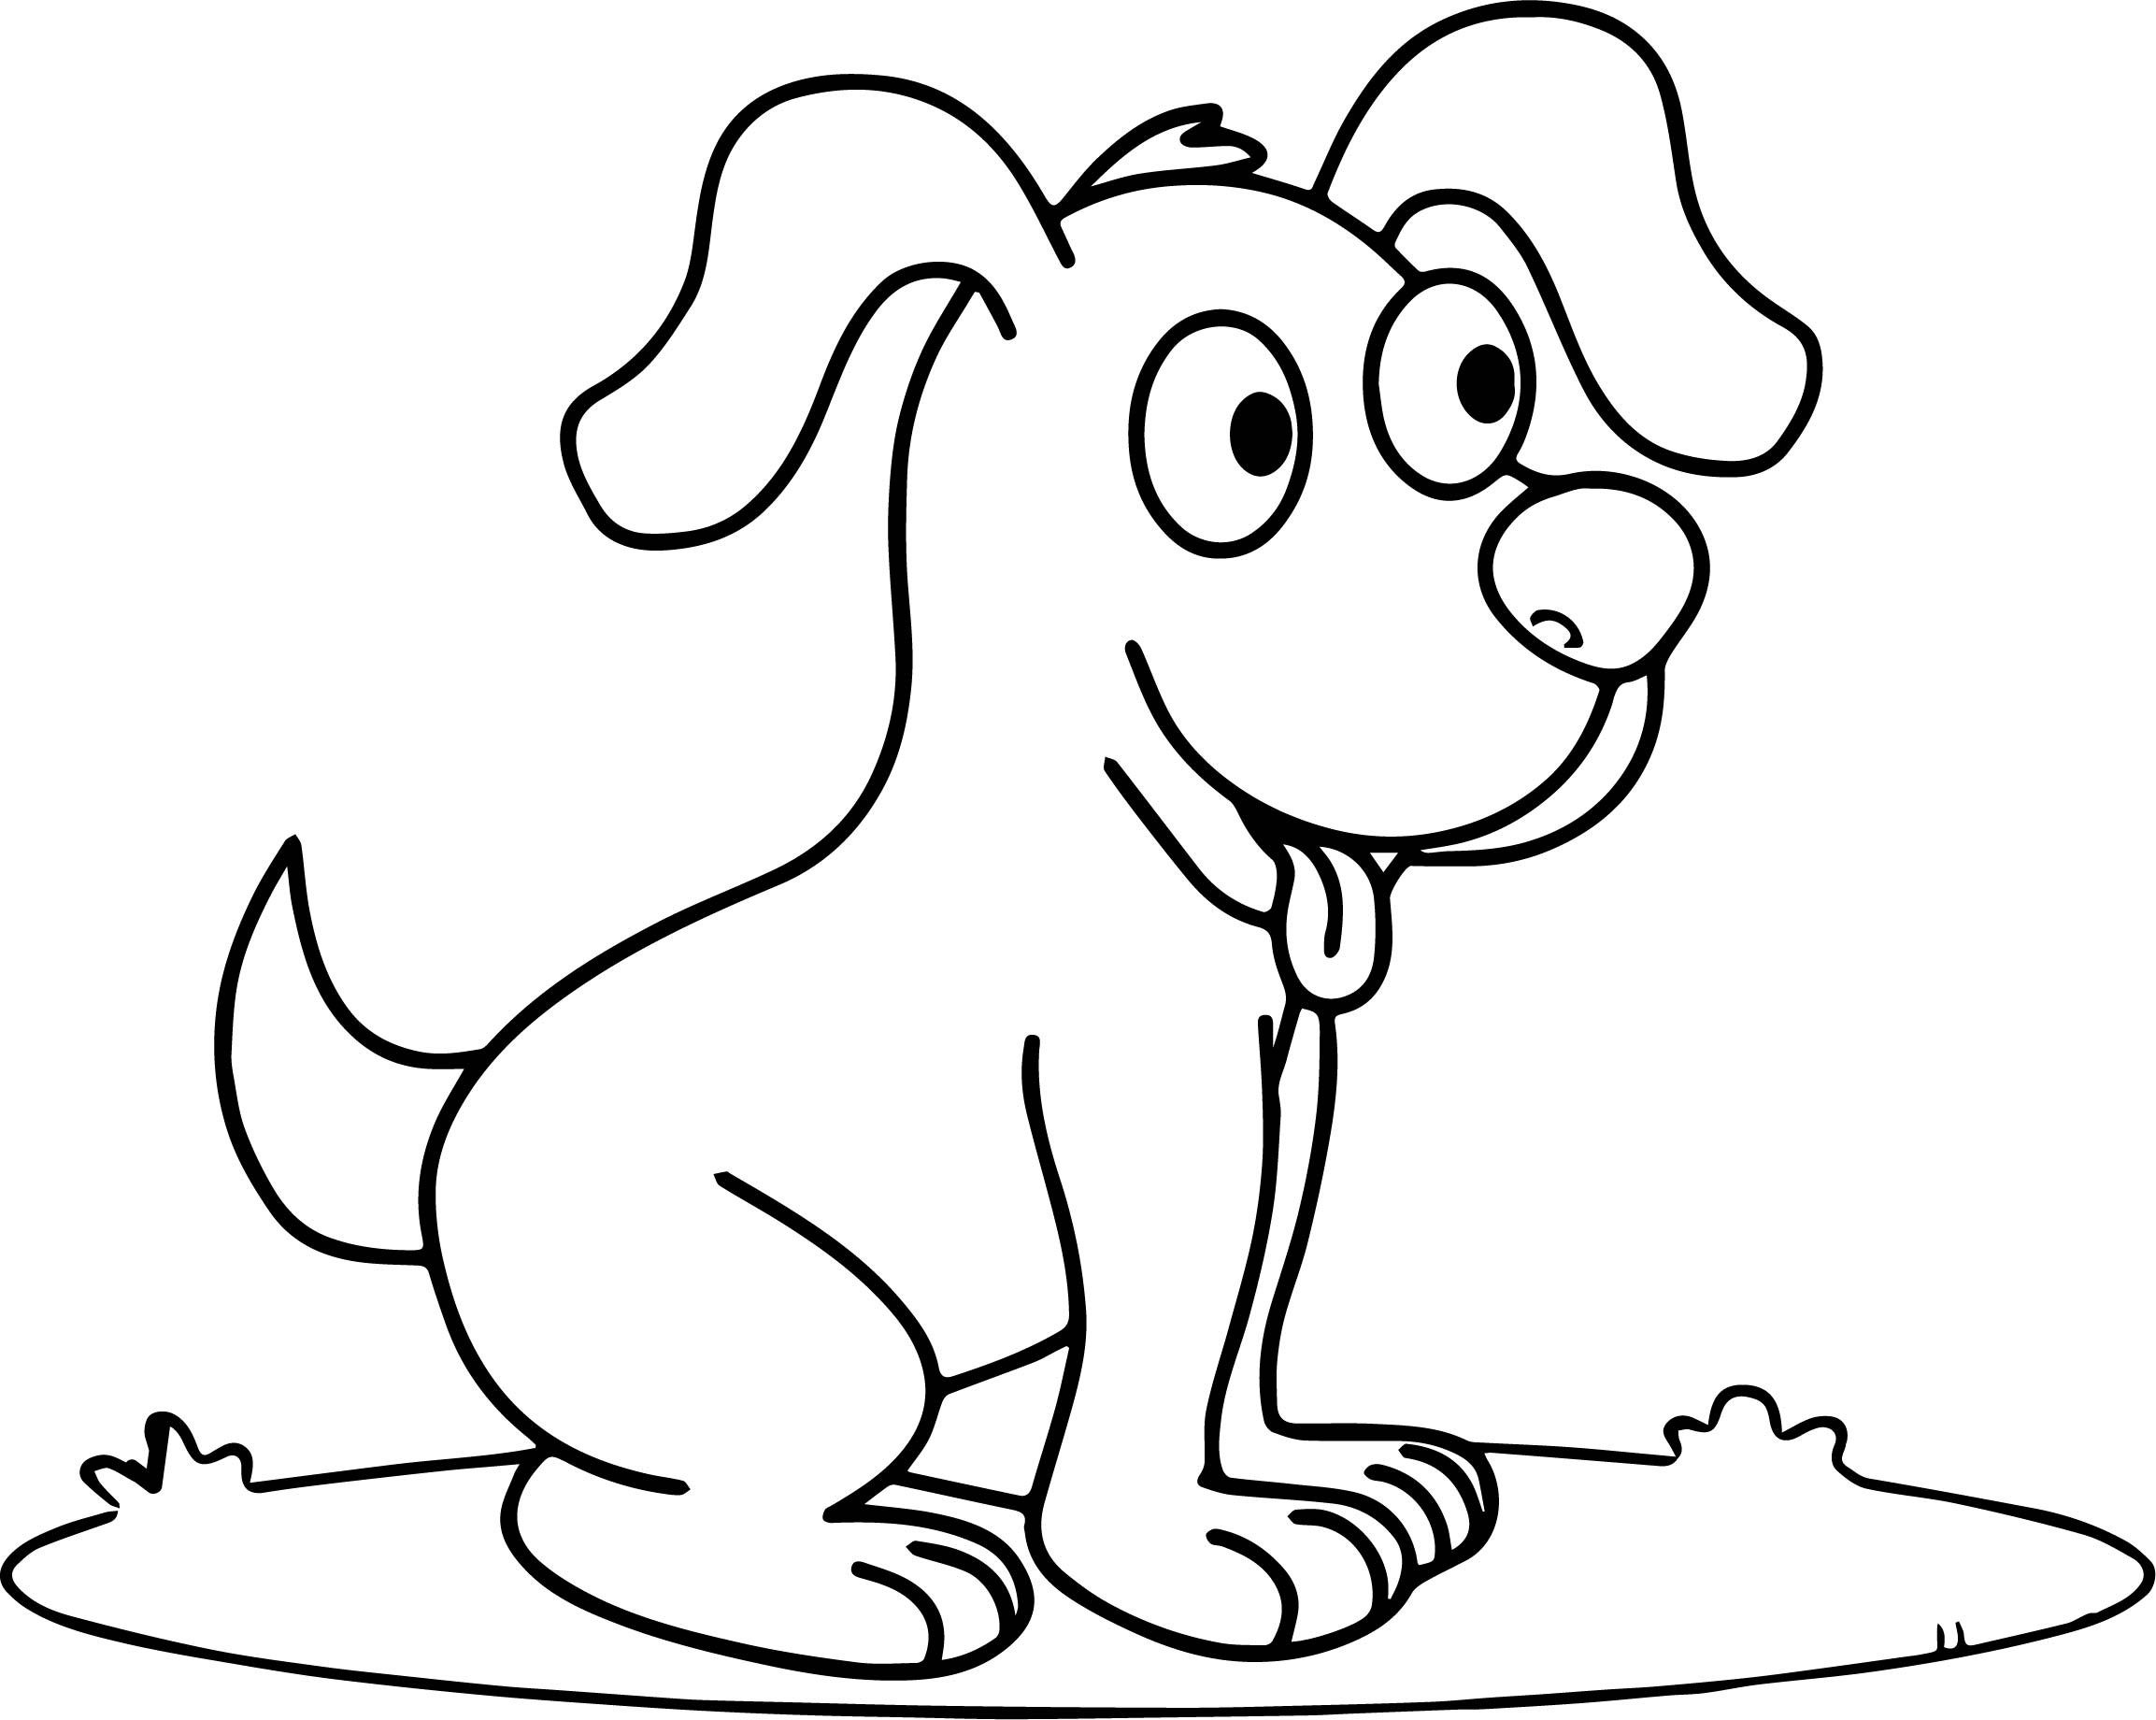 dog coloring in dog coloring pages for kids preschool and kindergarten in dog coloring